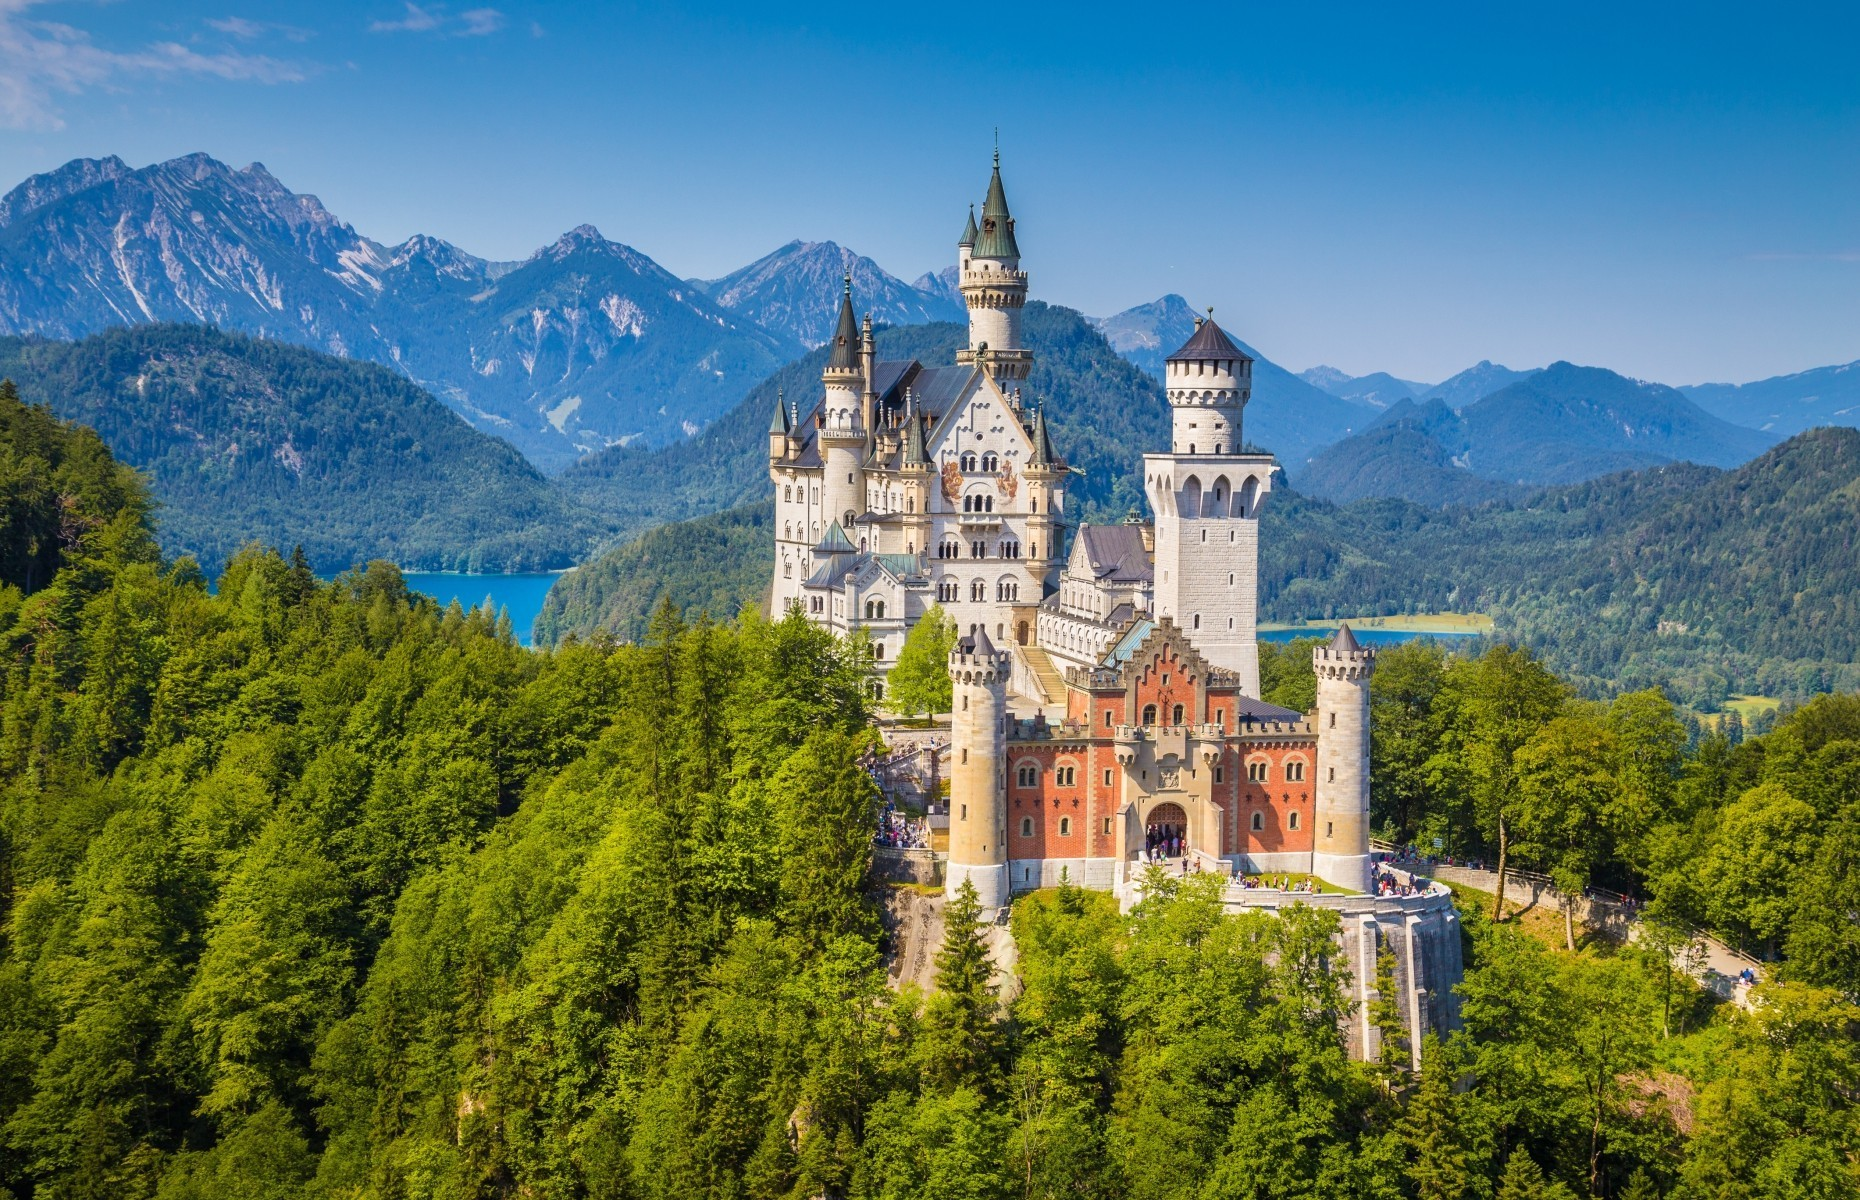 Slide 2 of 41: If you've seen Sleeping Beauty or visited any of the Disney theme parks, you will immediately recognize Neuschwanstein castle, built in the 19th century.